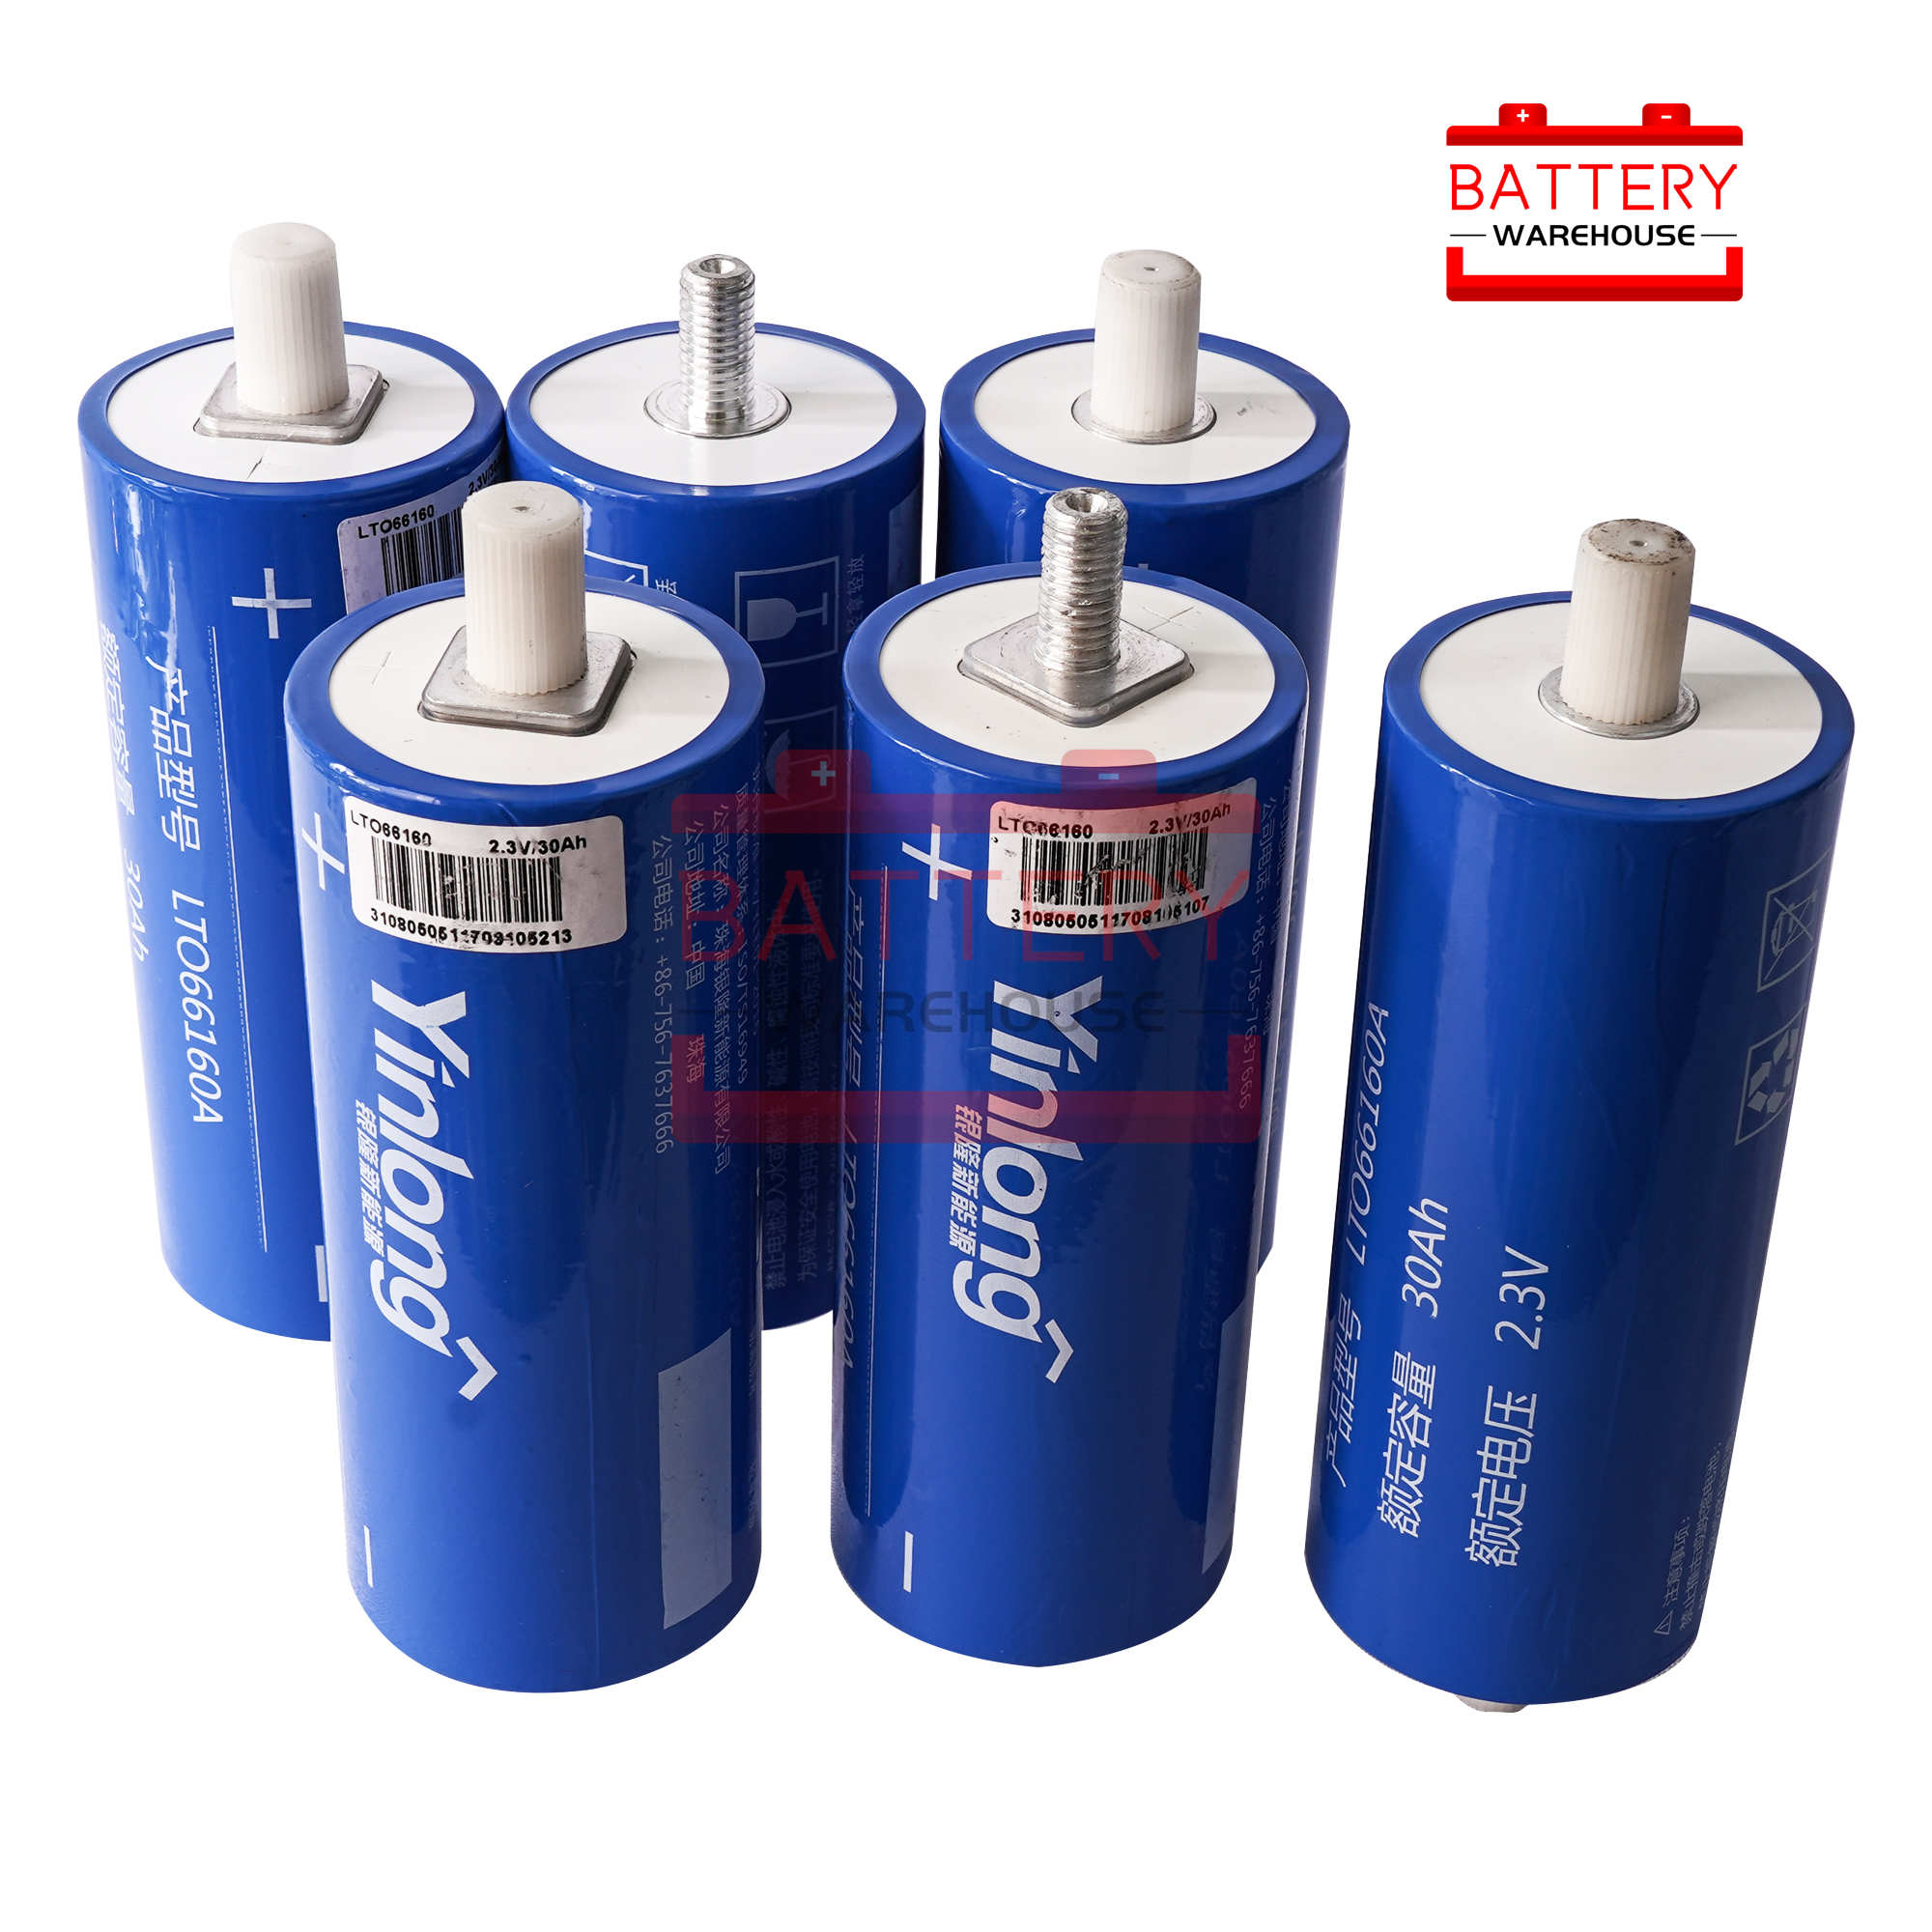 6pcs LTO <font><b>66160</b></font> 2.4v 30Ah Lithium Titanate Battery Cell 2.3v <font><b>66160</b></font> 10C 300A for Diy Pack 12v not lto 40ah Long Cycle Life Stocks image